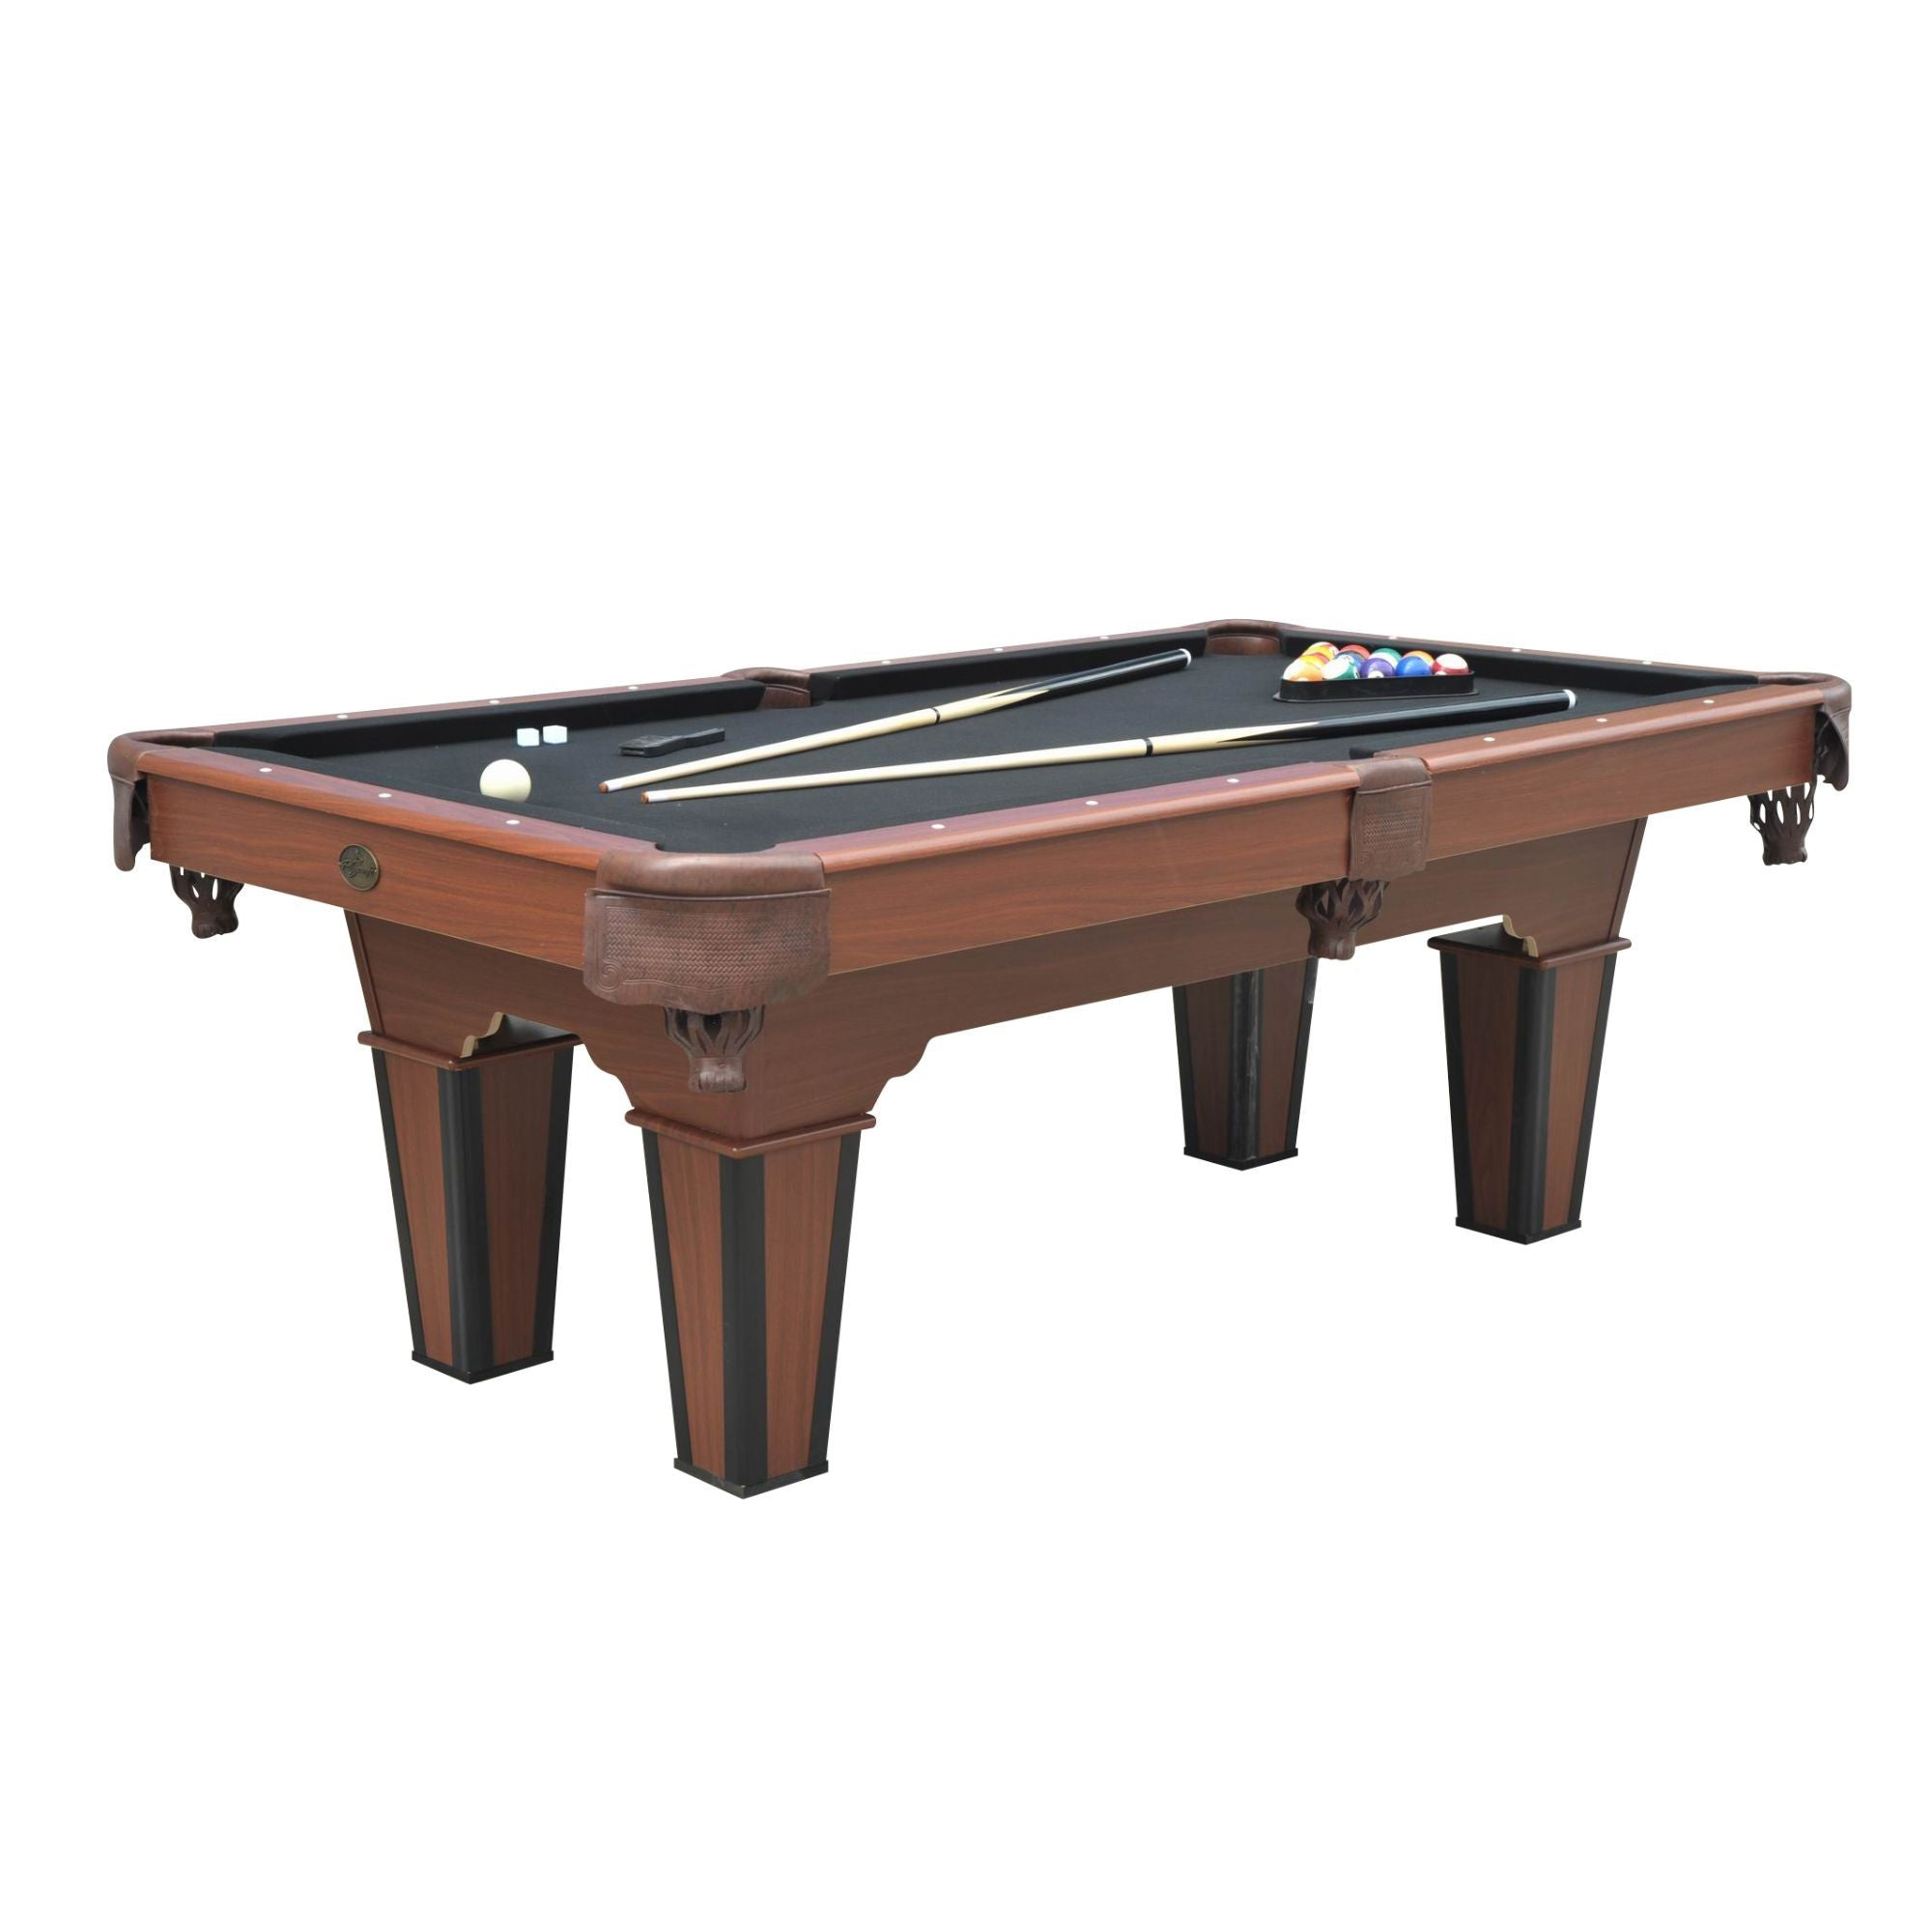 Playcraft Arcadia 7' Pool Table with Black Cloth - Gaming Blaze